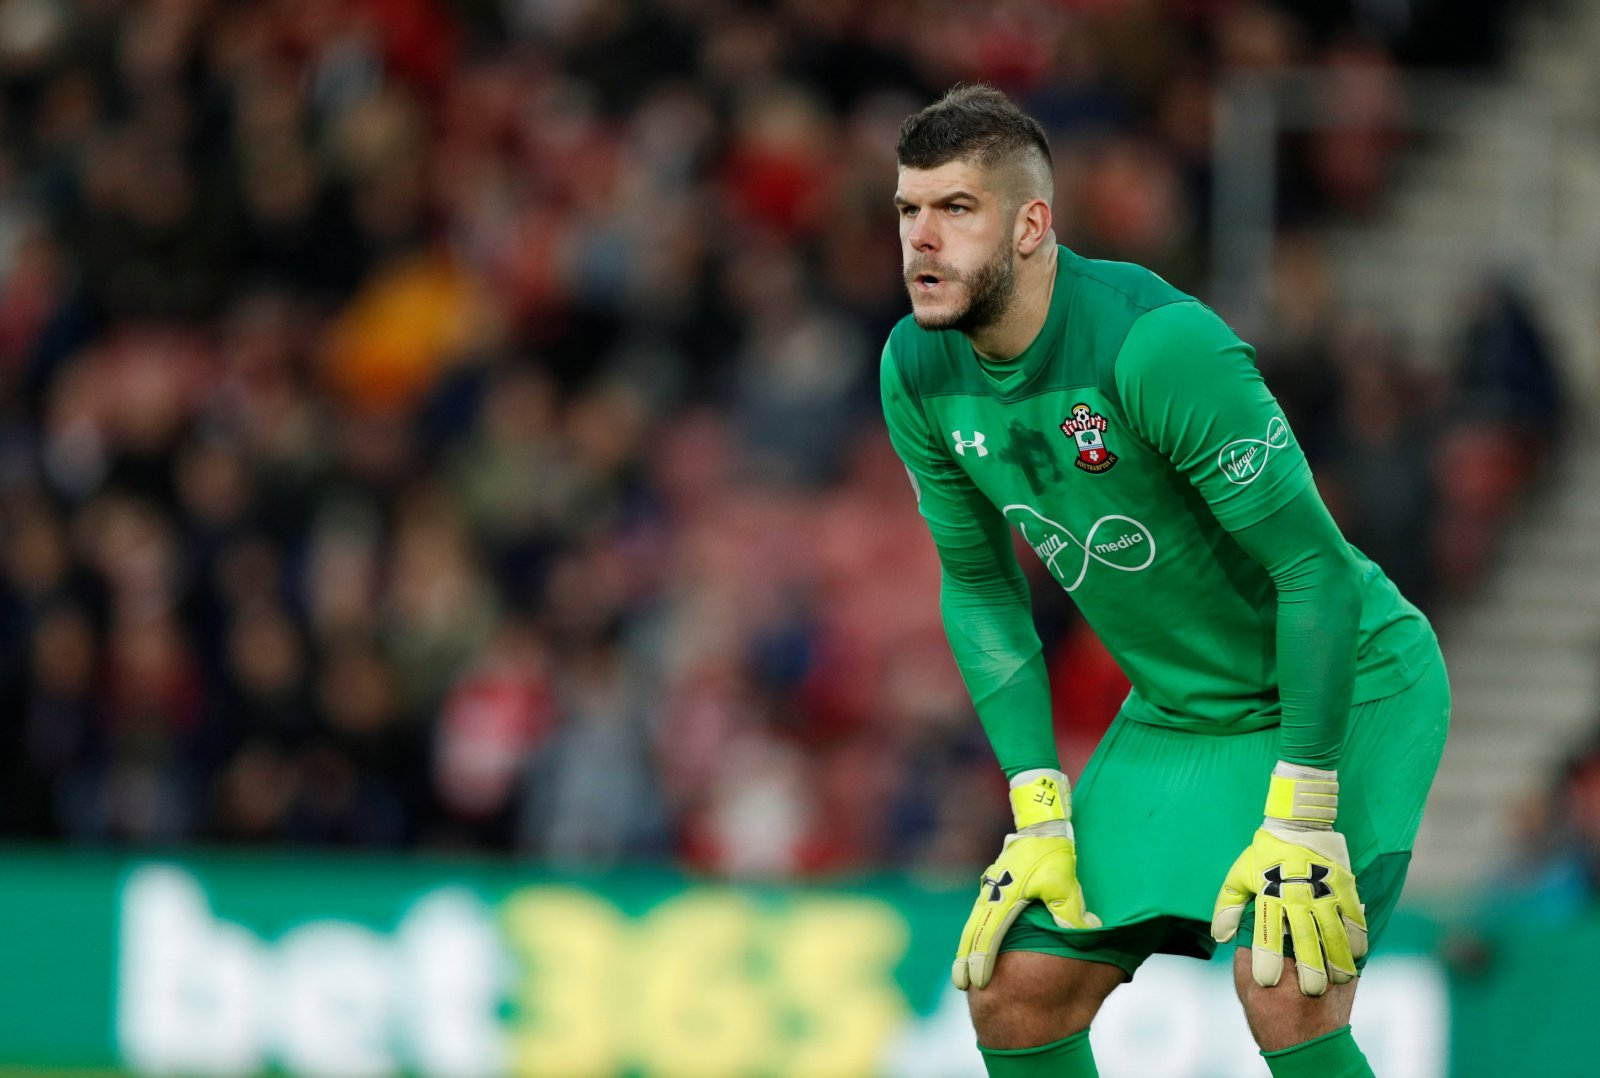 Southampton: £70,000-a-week wages could prove a stumbling block for Forster